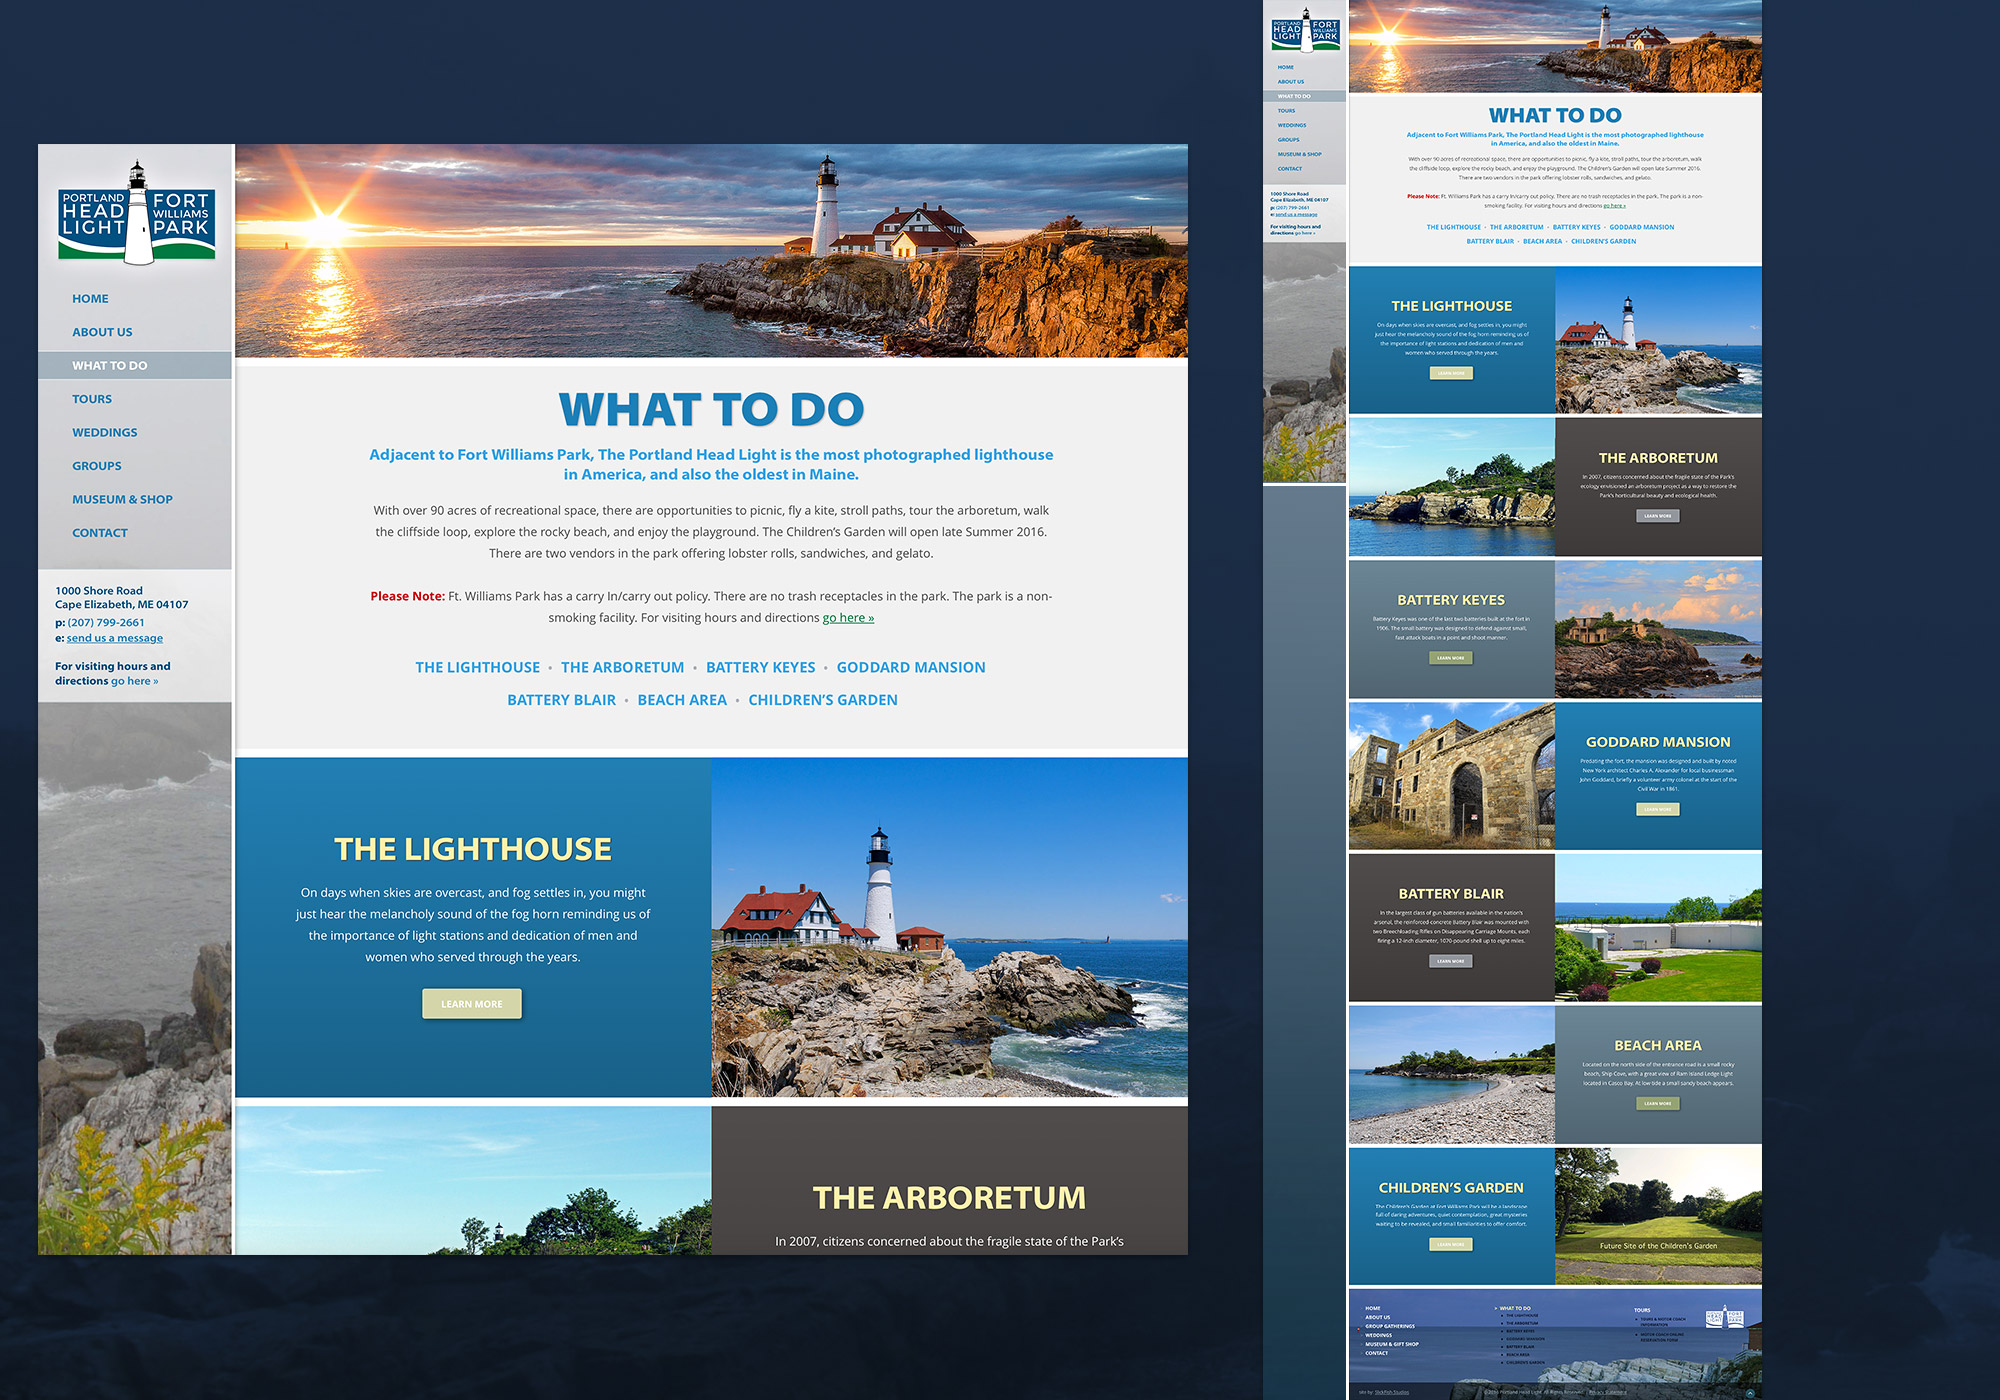 A screenshot of the SlickFish designed Fort Williams Park web site in Cape Elizabeth, Maine.